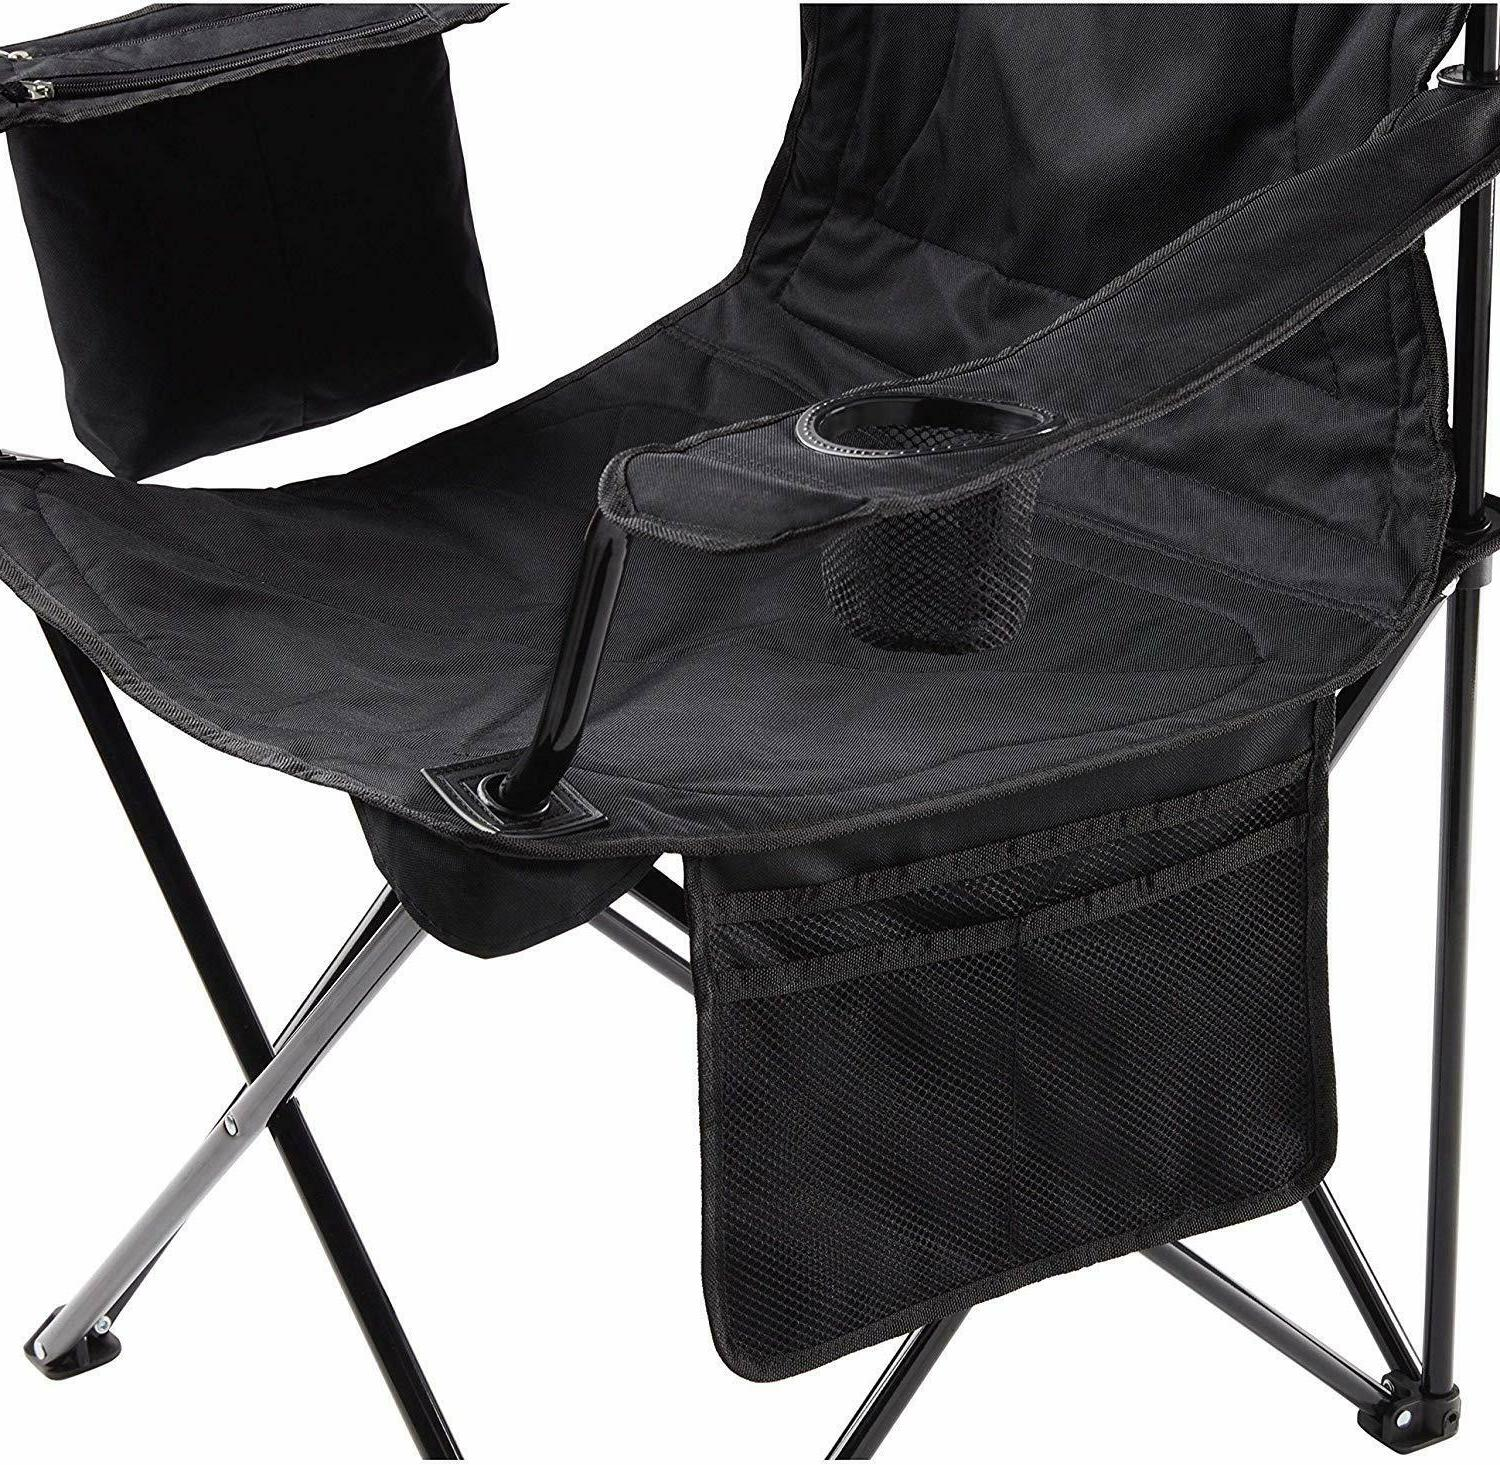 HOT!!! Camping Quad with 4-Can Cooler